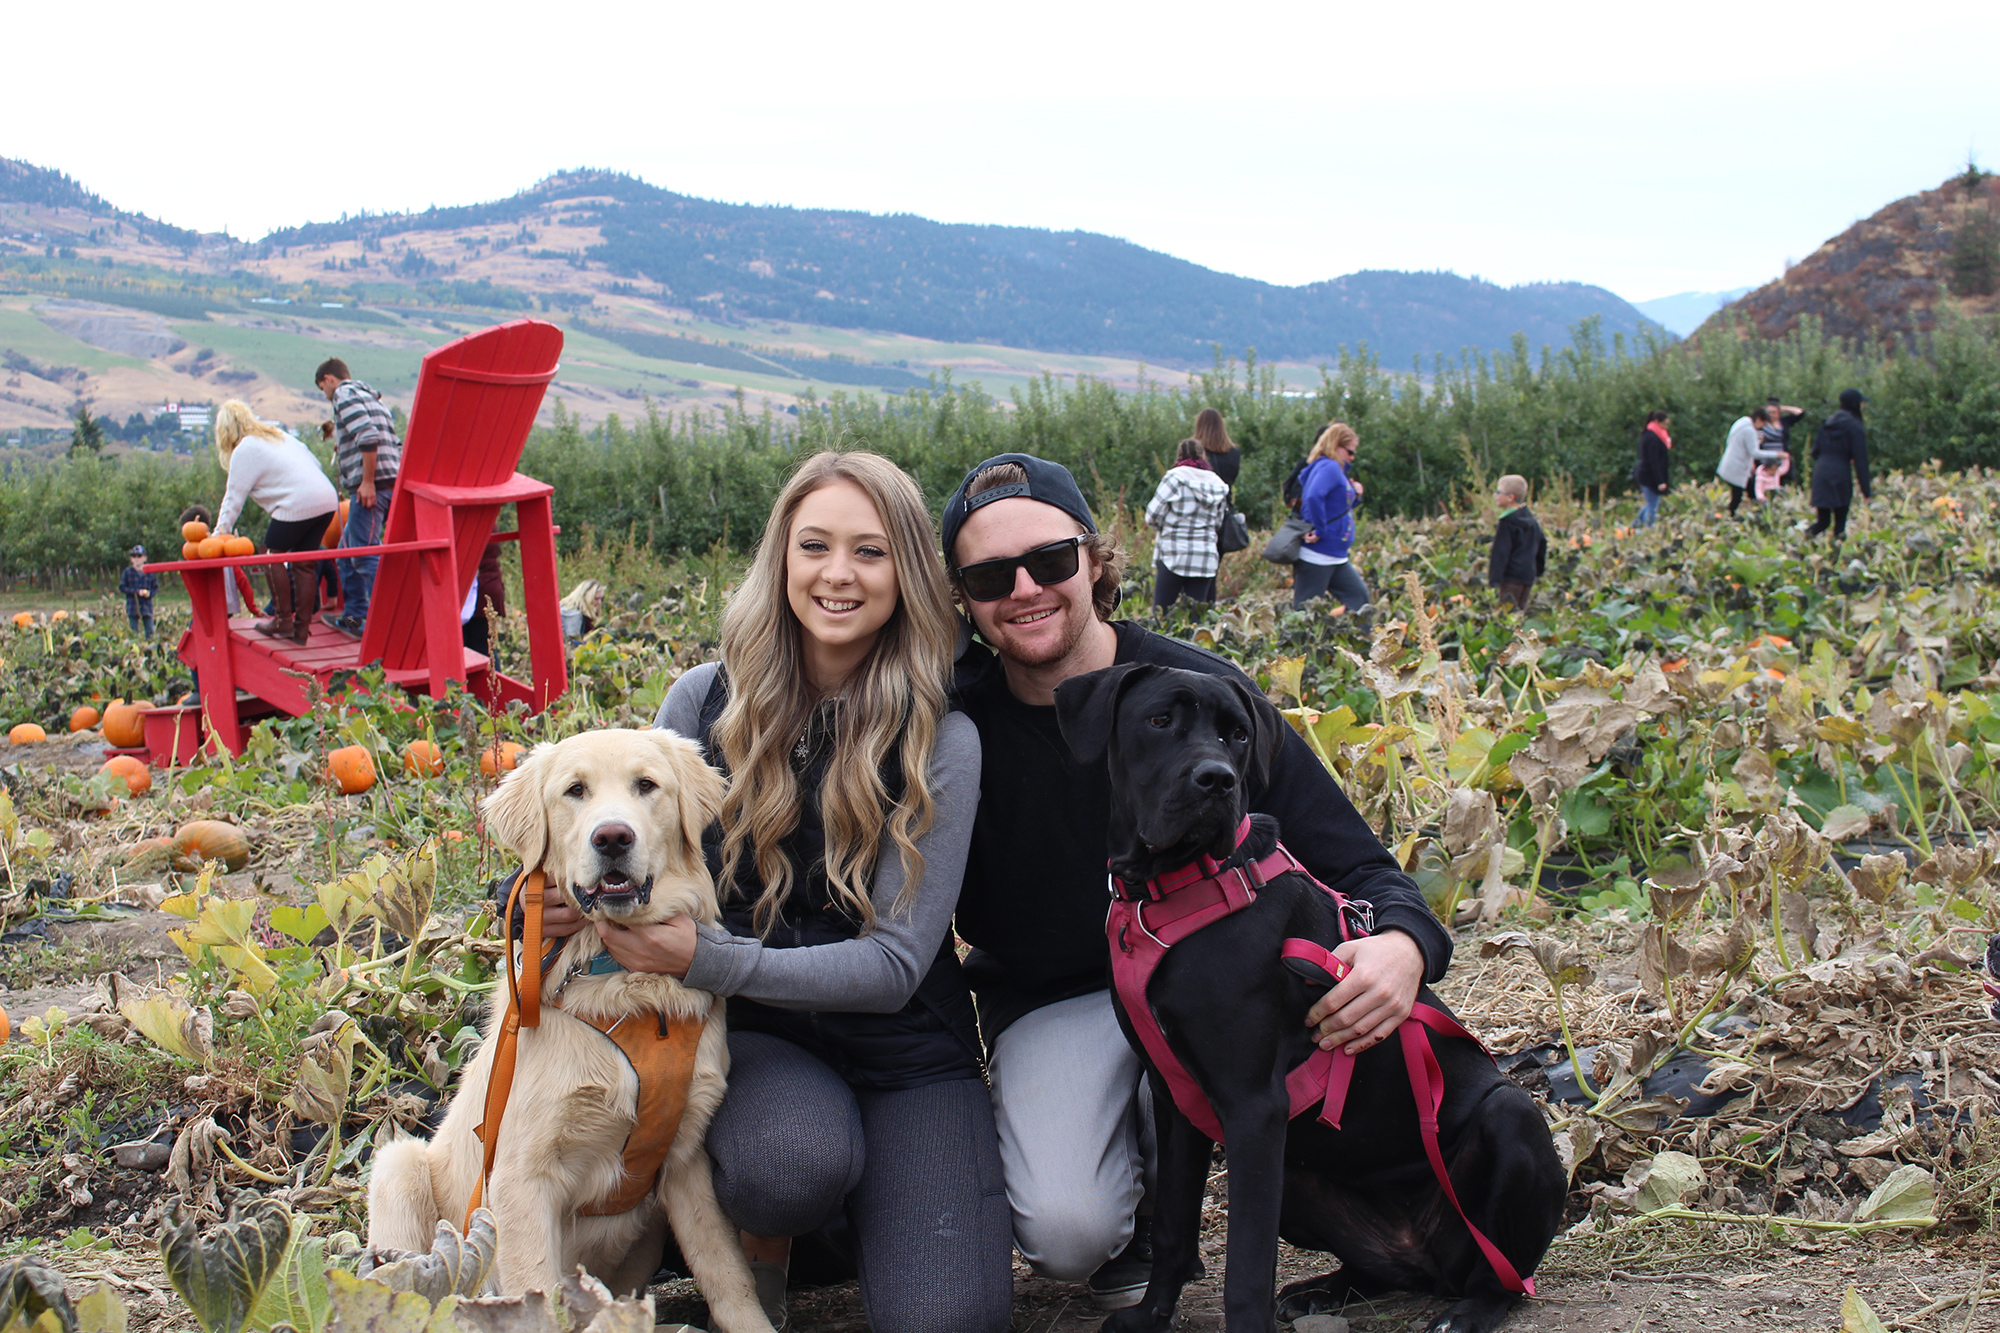 Myself and my girlfriend Sam with our 2 pups! (Bam Bam is the golden on the left and Aspen is the black one to the right :D)